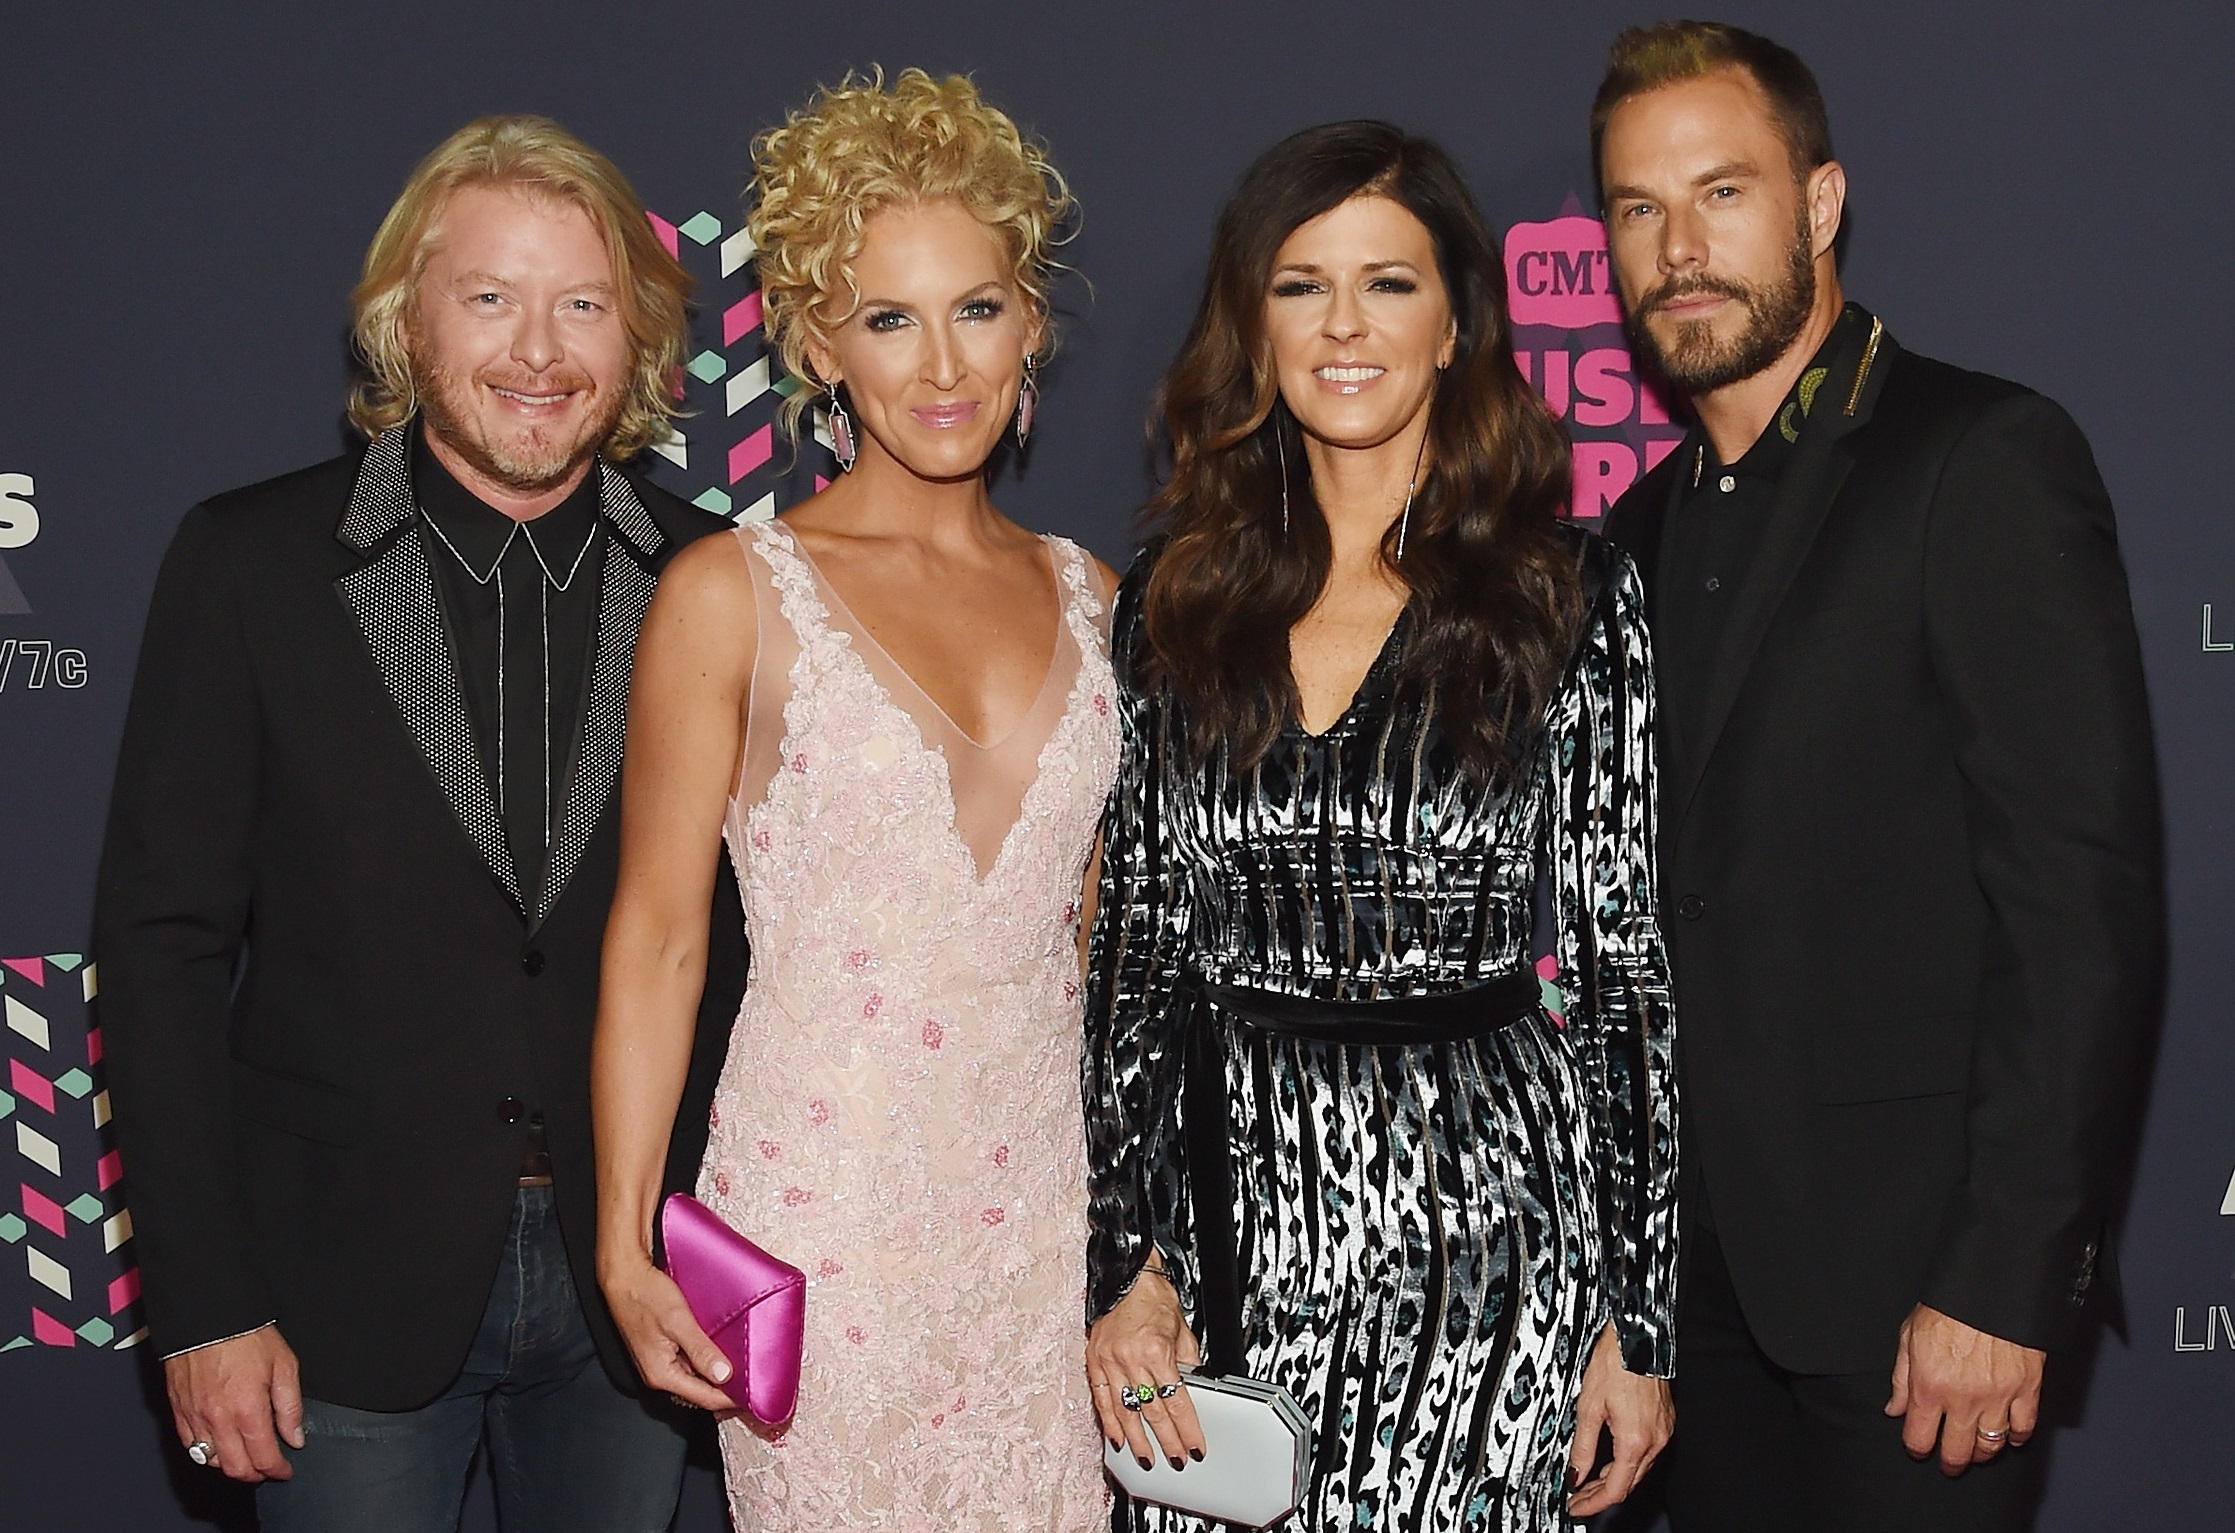 Image result for little big town cmt